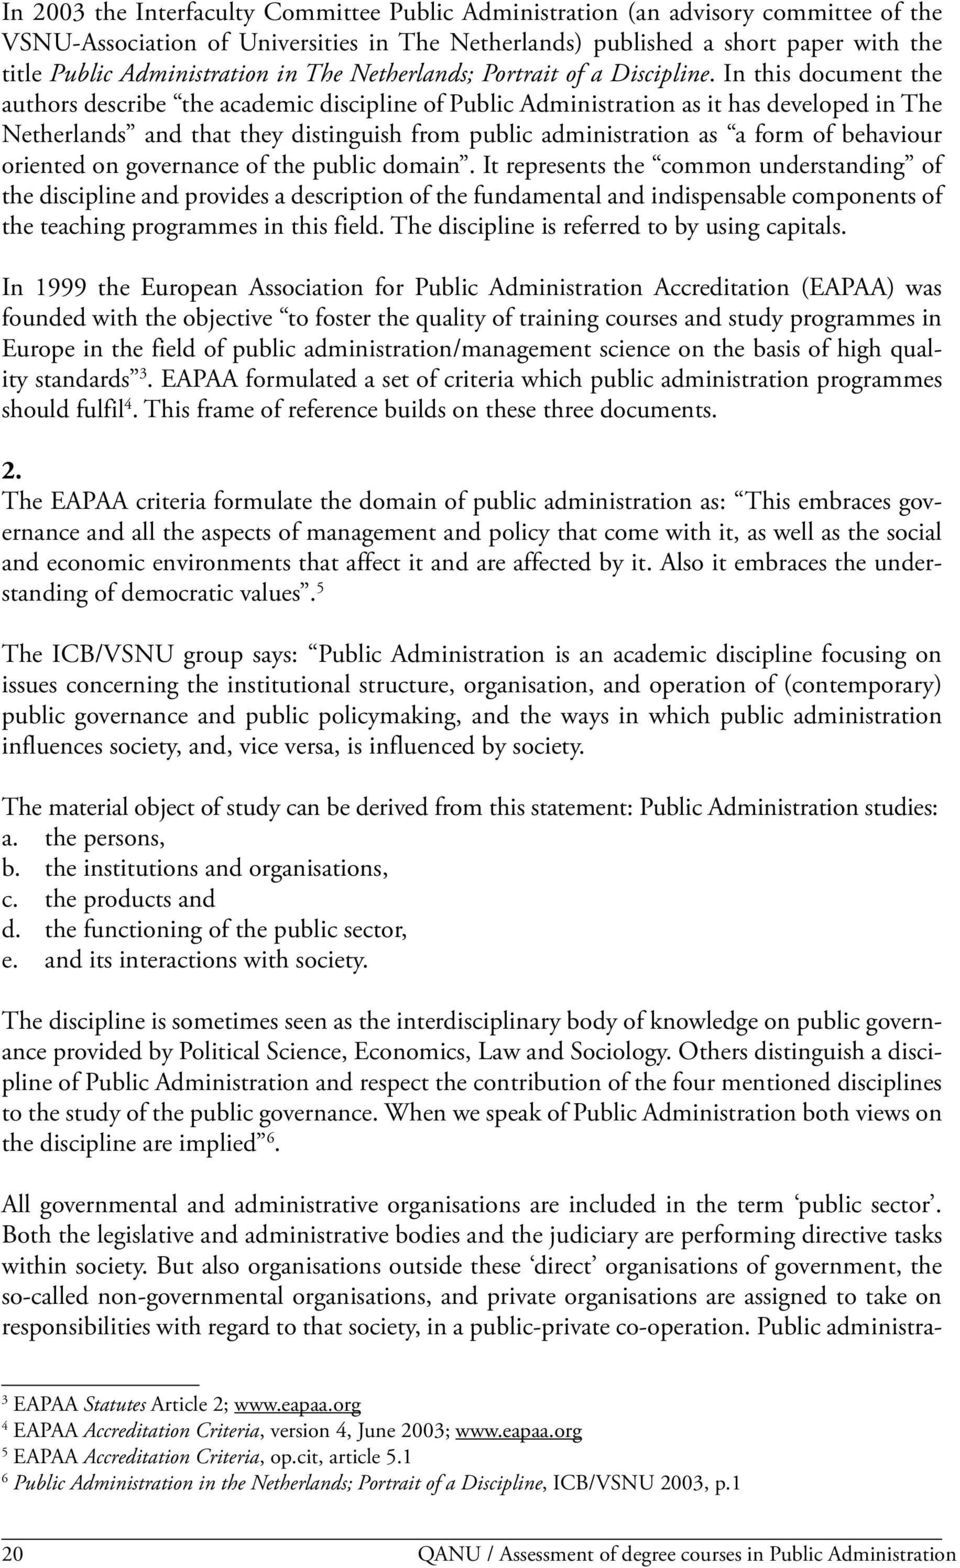 In this document the authors describe the academic discipline of Public Administration as it has developed in The Netherlands and that they distinguish from public administration as a form of